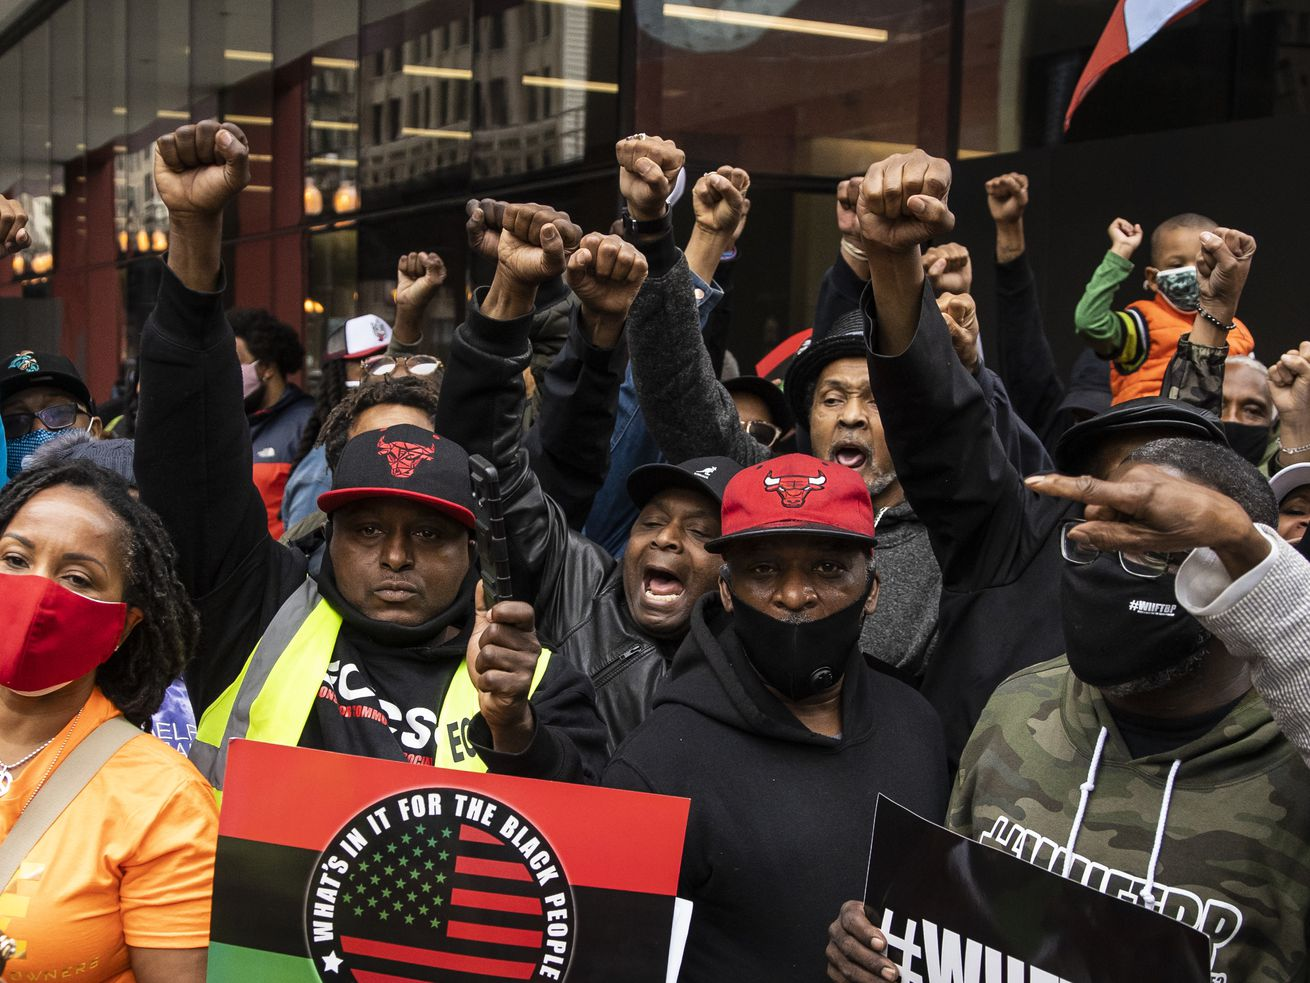 More than a hundred people gather for a rally outside the Chicago Housing Authority headquarters in the Loop, to decry economic disparities for black communities in the city, Monday morning, May 3, 2021.